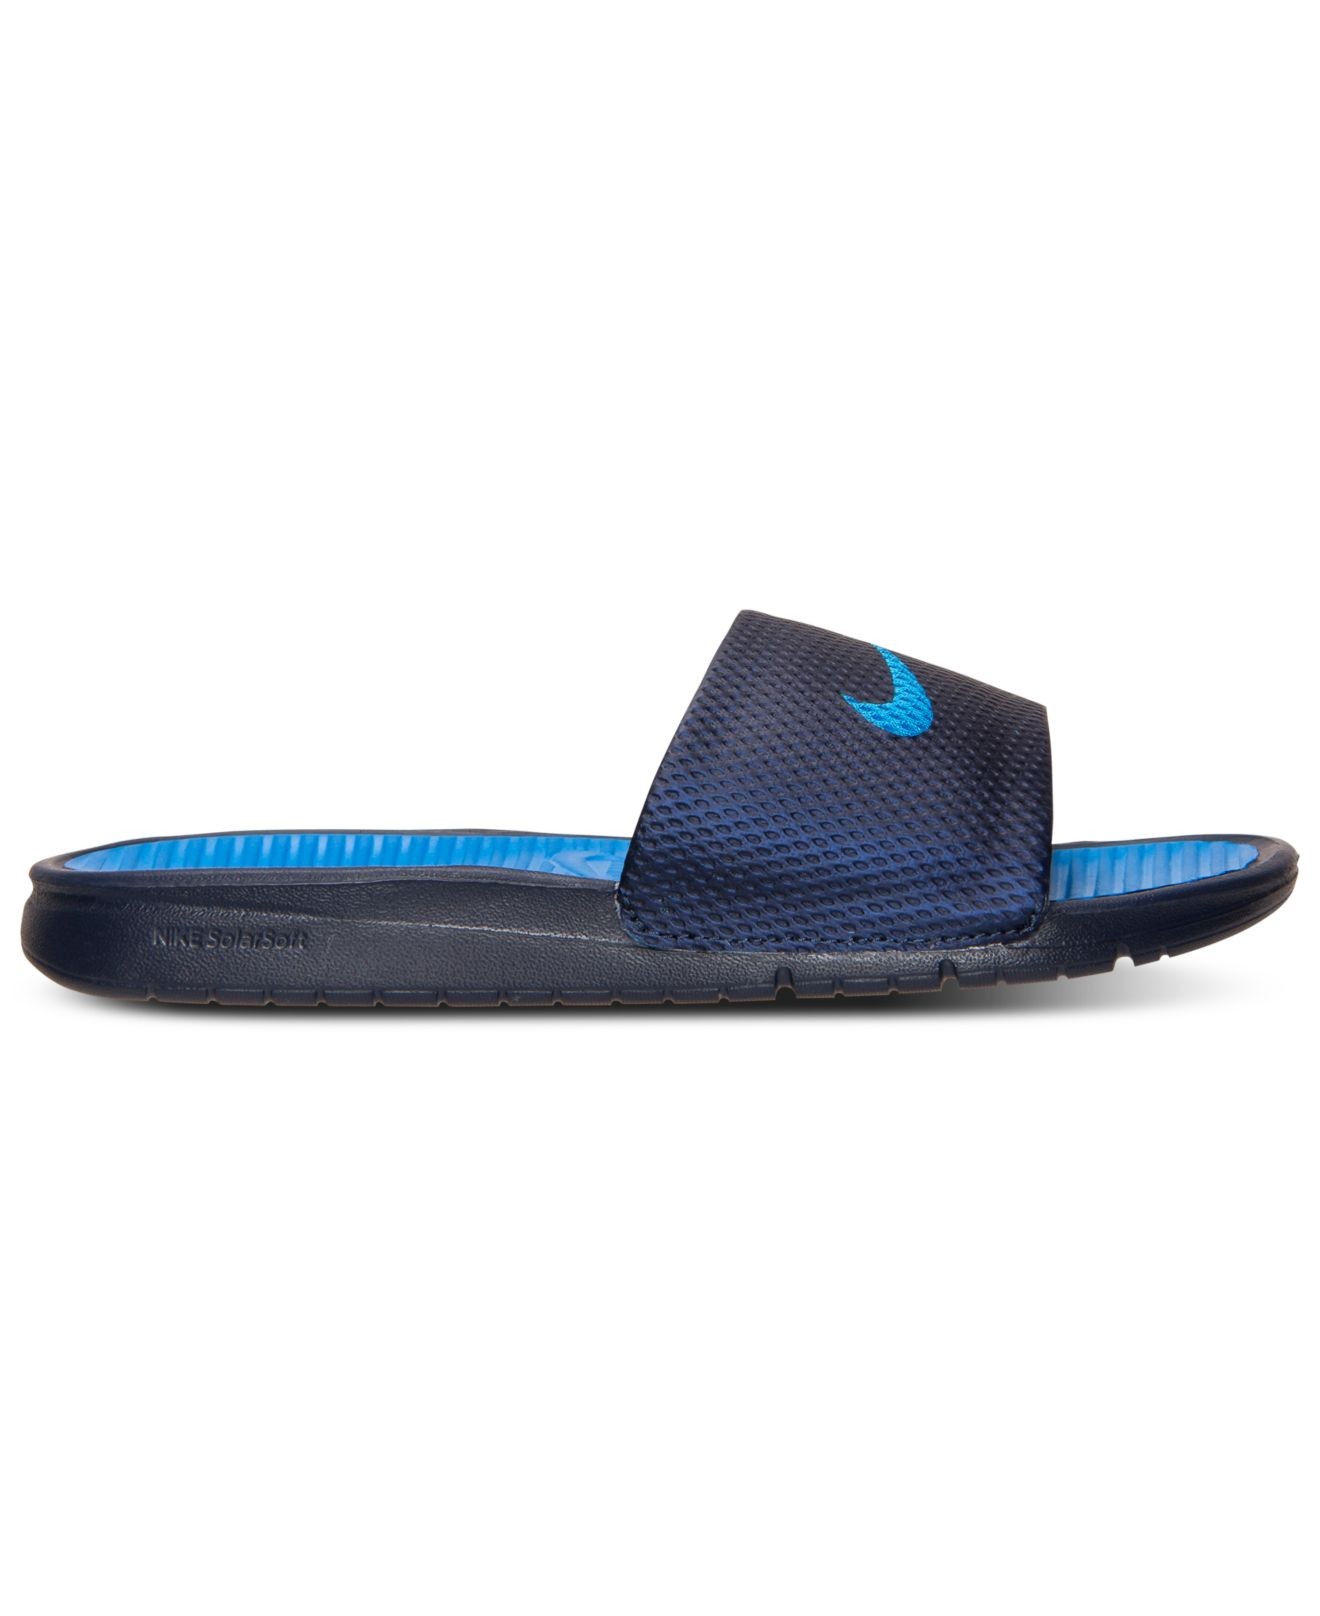 d6fedf2e1 ... spain lyst nike mens benassi solarsoft slide sandals from finish line  bbca0 6699d